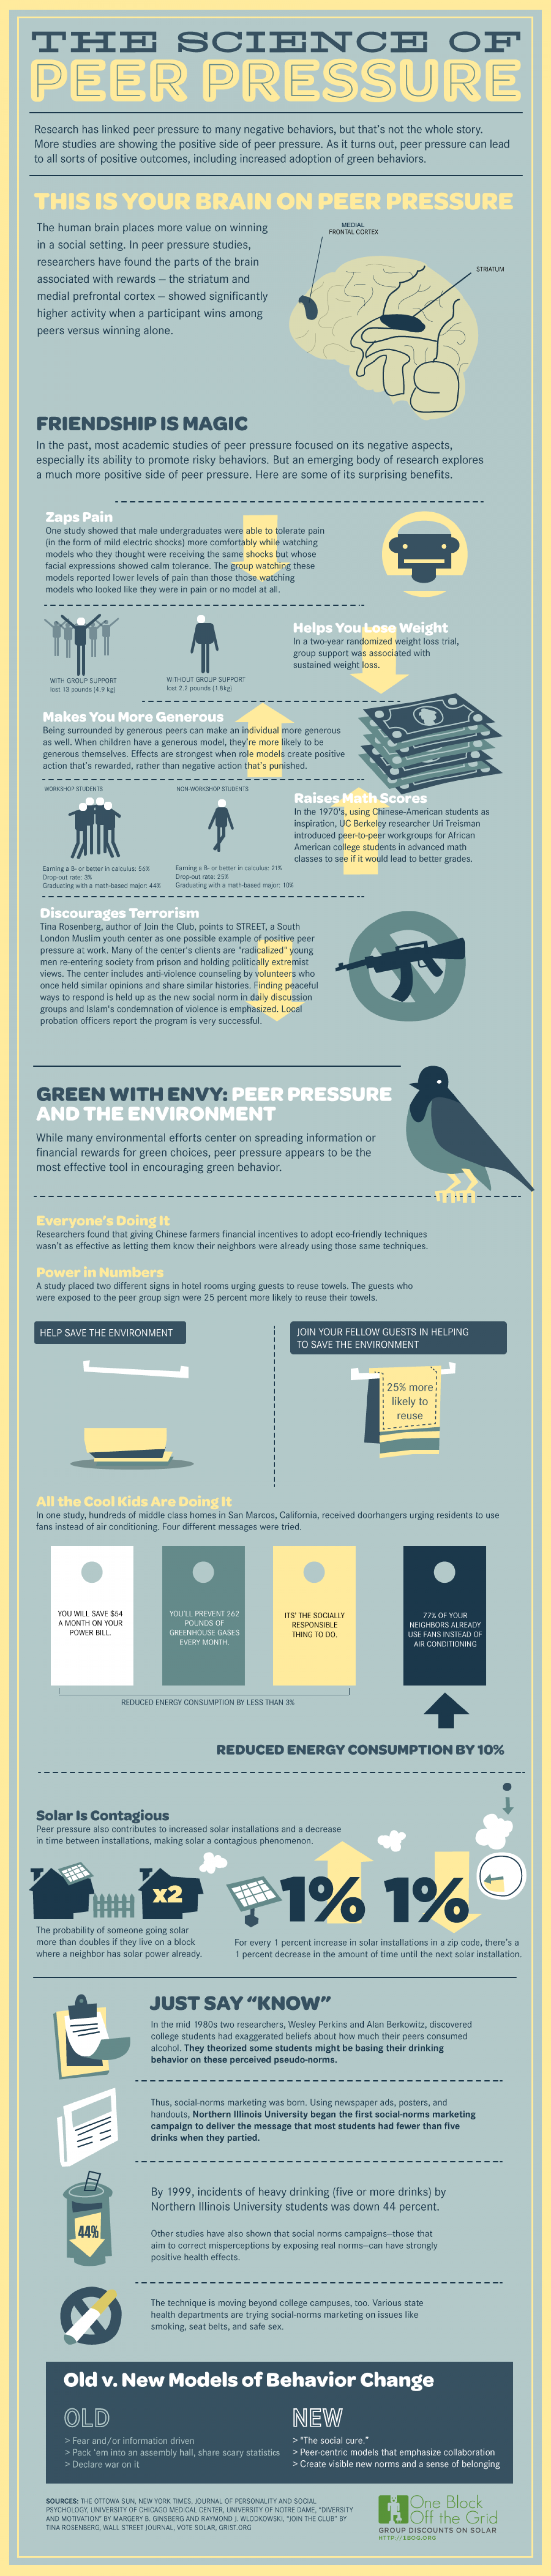 The Science of Peer Pressure Infographic